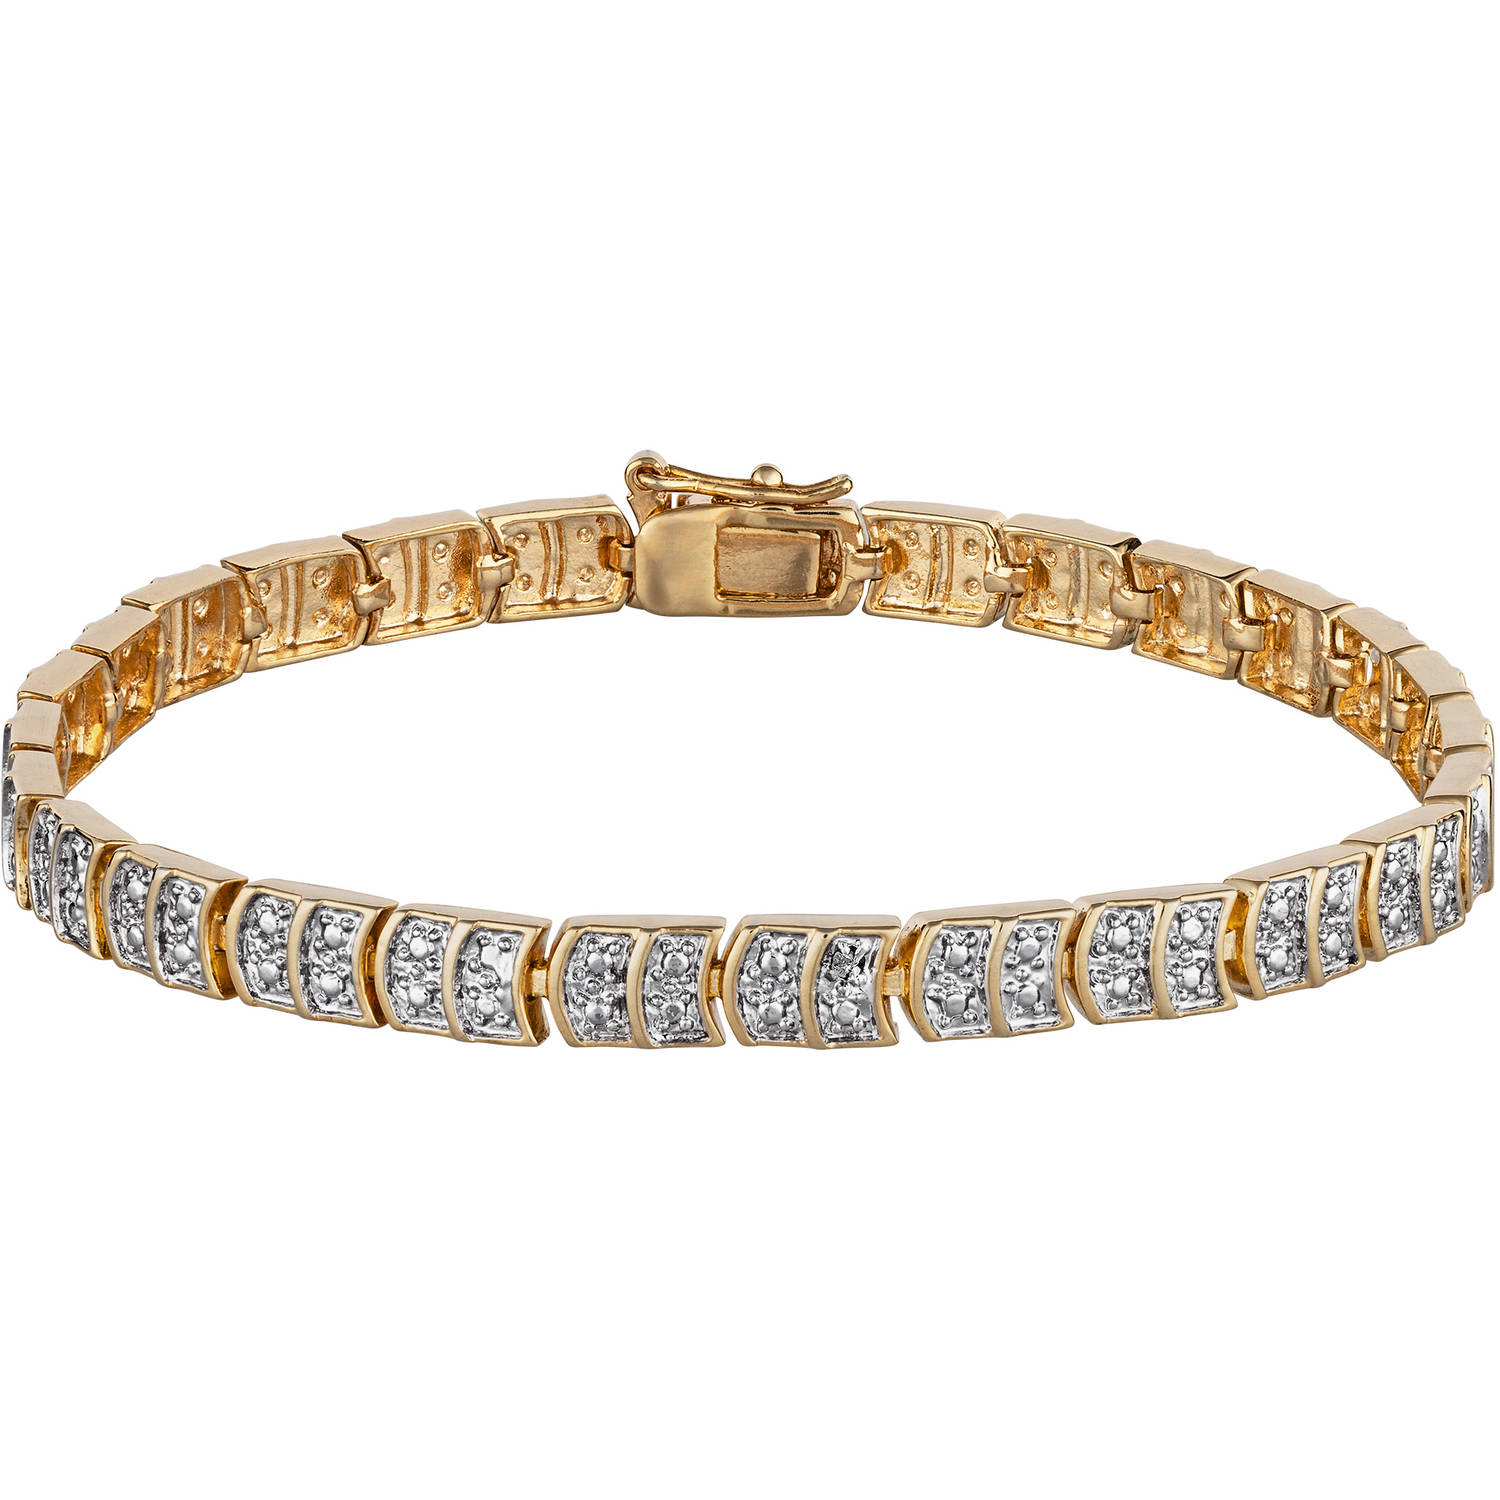 Diamond Accent 14kt Gold-Plated Tennis Bracelet, 7.5""